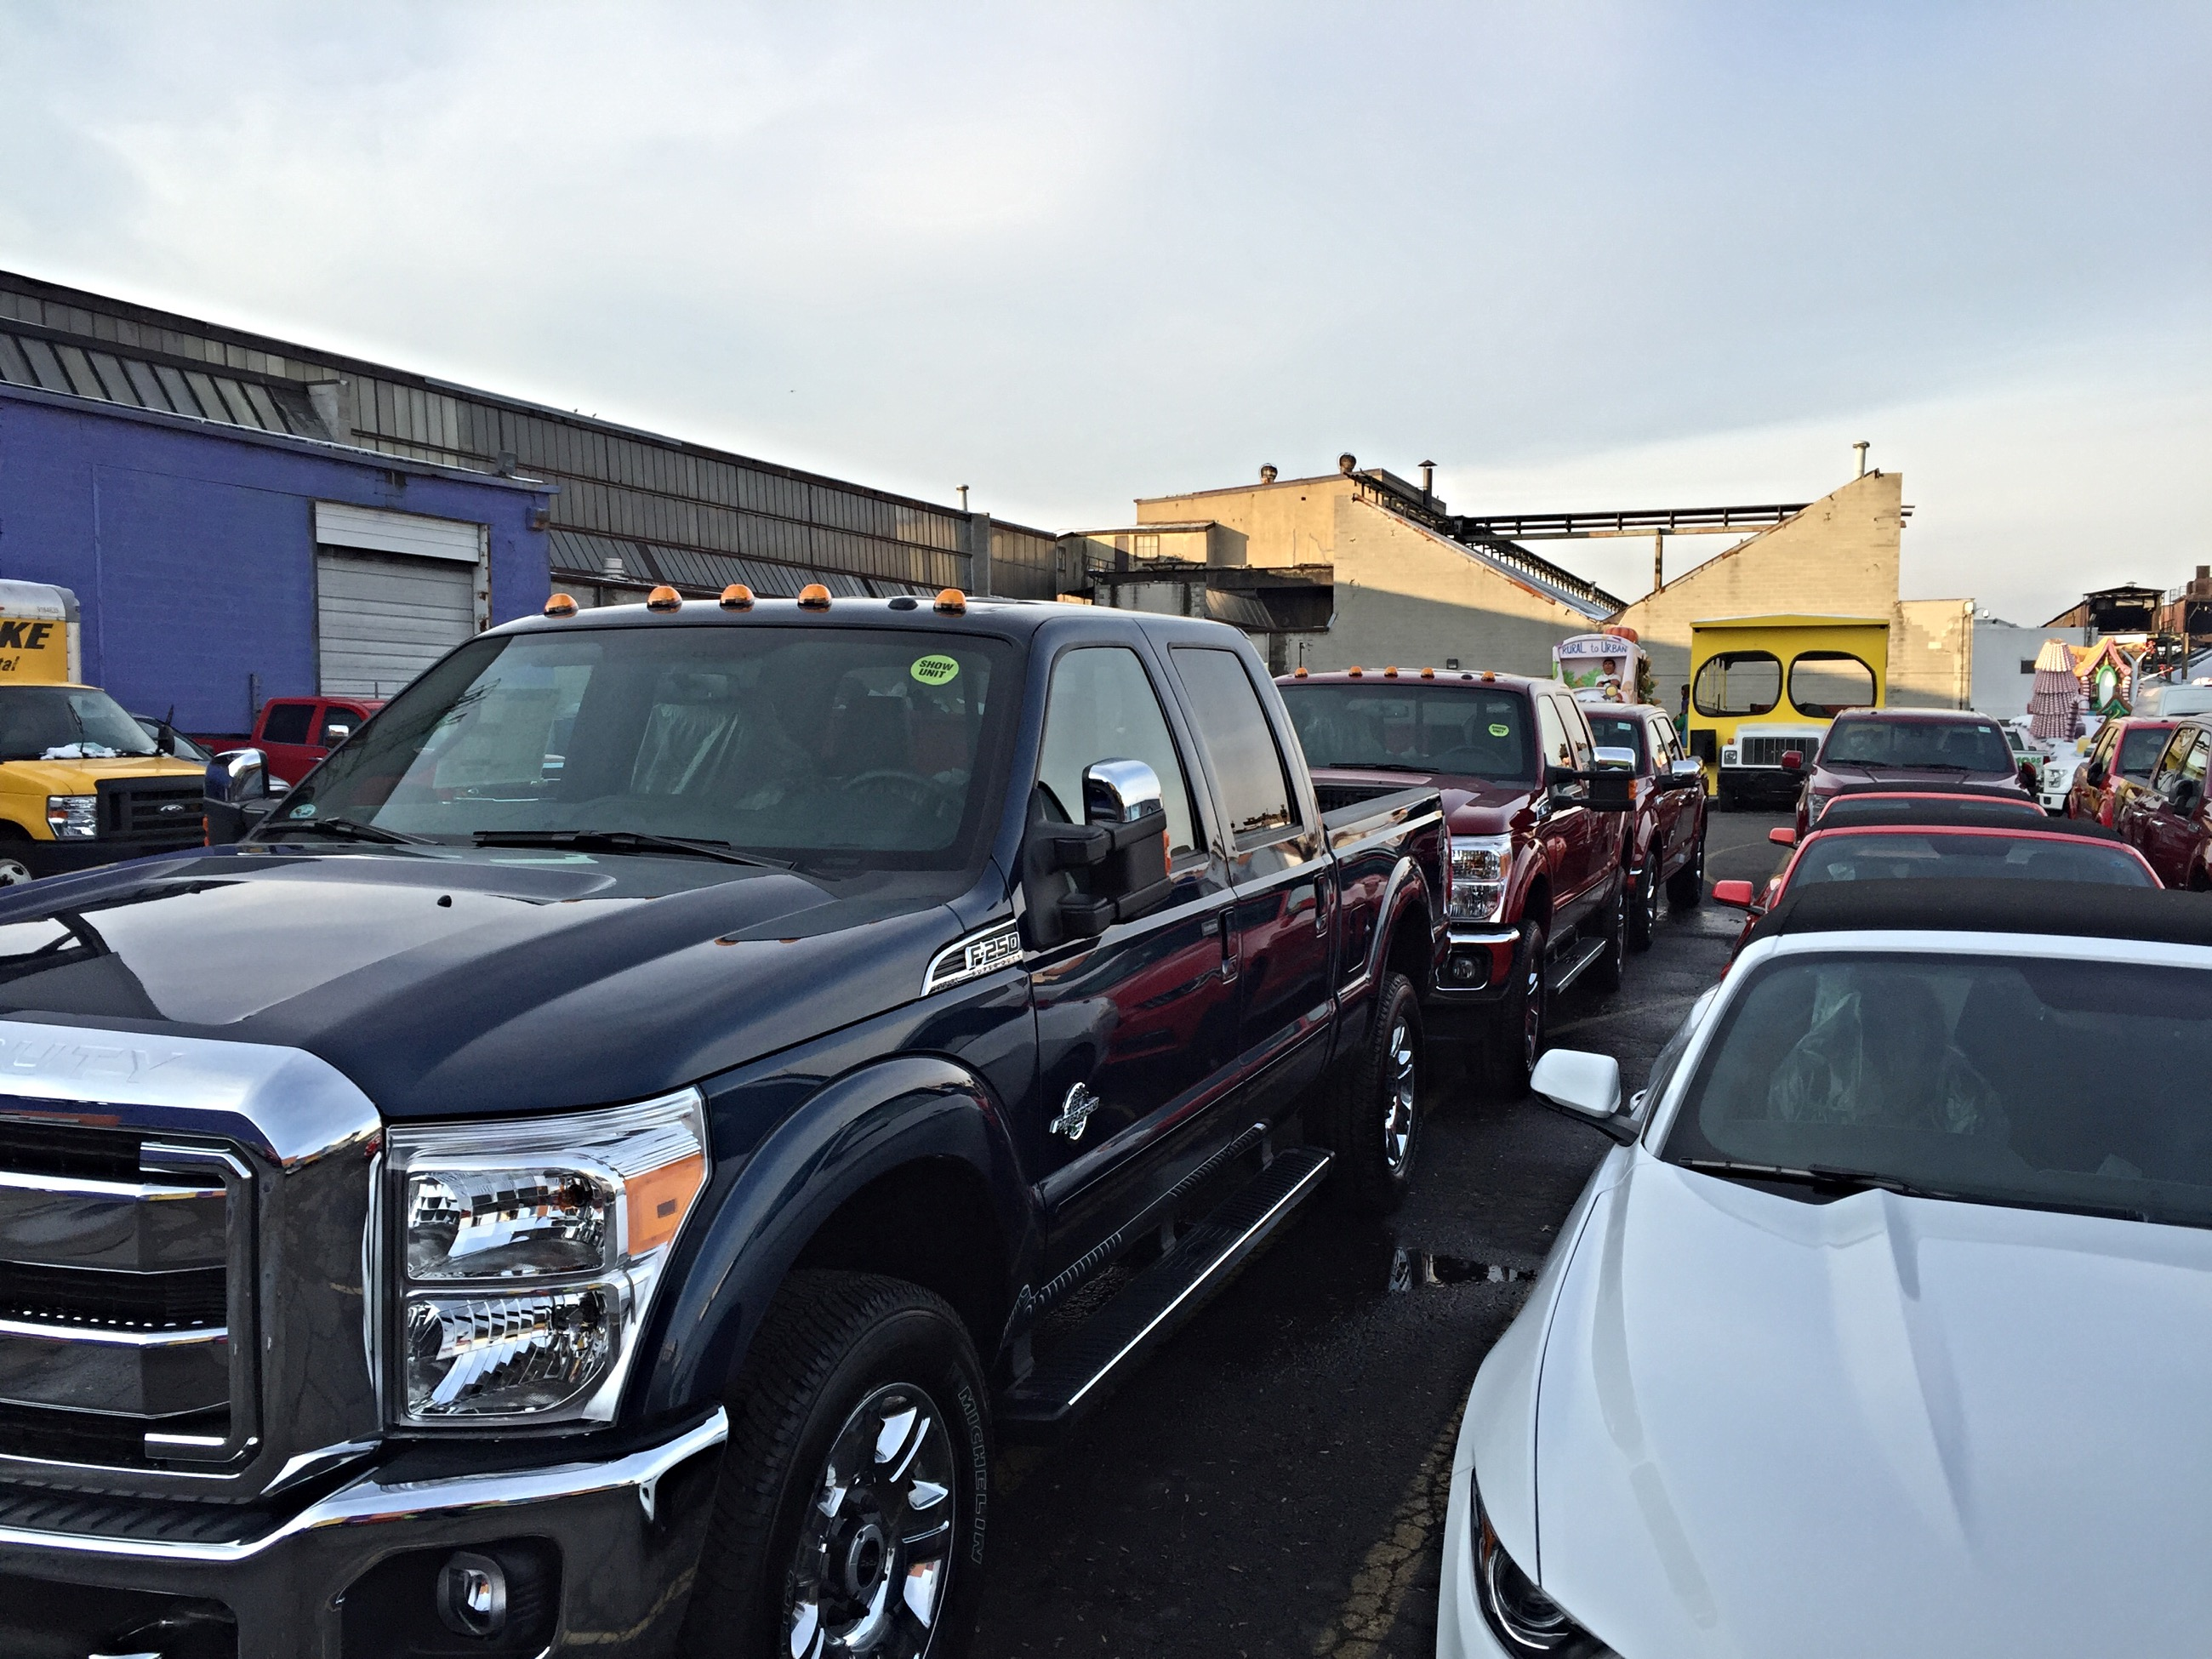 Flawless Auto Finish, Ford, parade, event, detailing